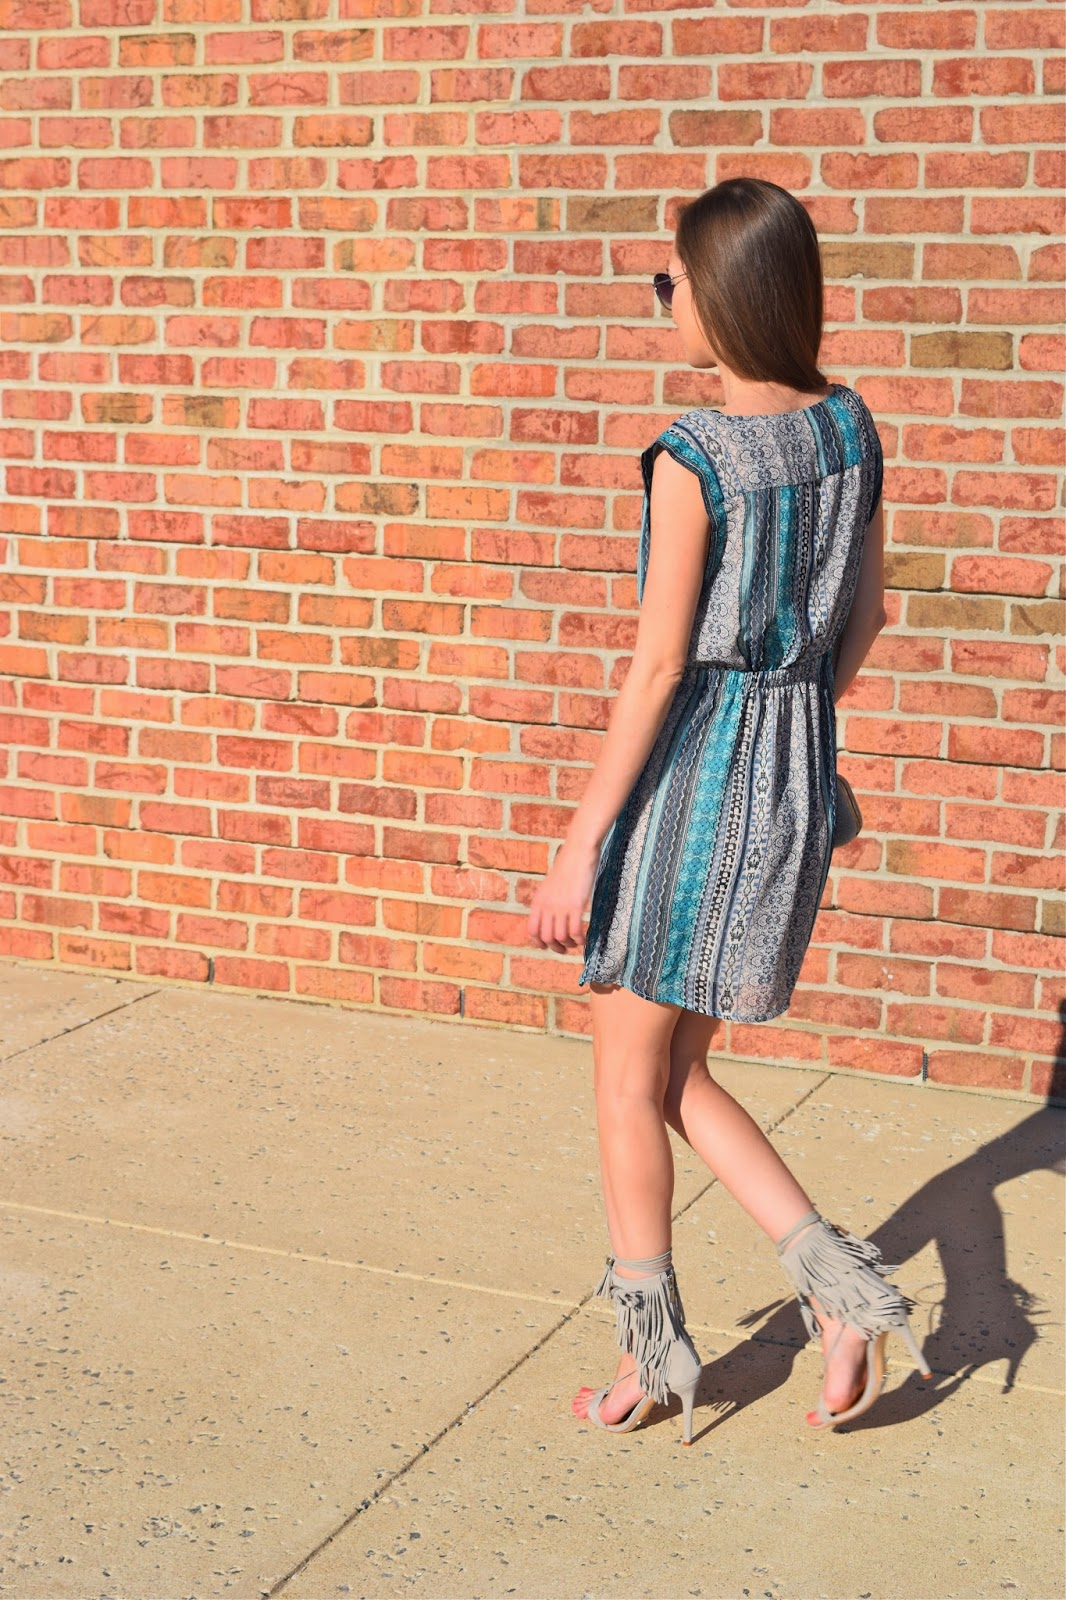 Wearing forever21 abstract tunic dress, wearing Schutz Shoes Kija Fringe heels